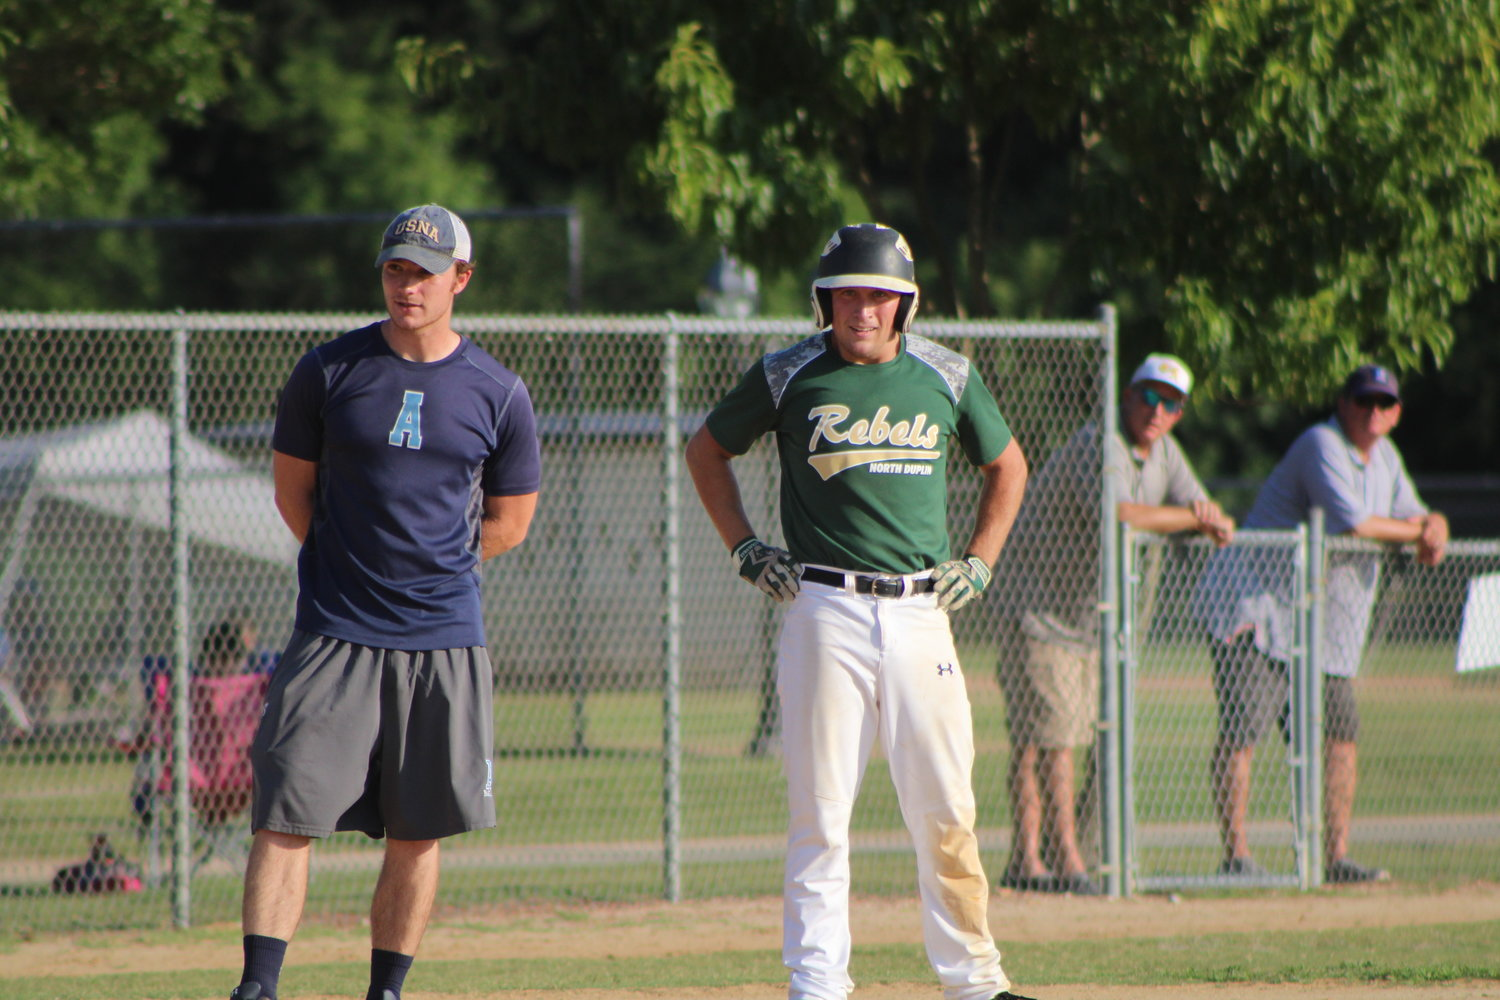 The Mount Olive Green Machine's Kyle Holland (right) stands at third base with associate head coach Braxton Leeper during a recent game. Holland, who just celebrated a birthday, delivered a key middle-inning double during the Machine's 5-3 triumph over the Garner Junior Nats on Monday.